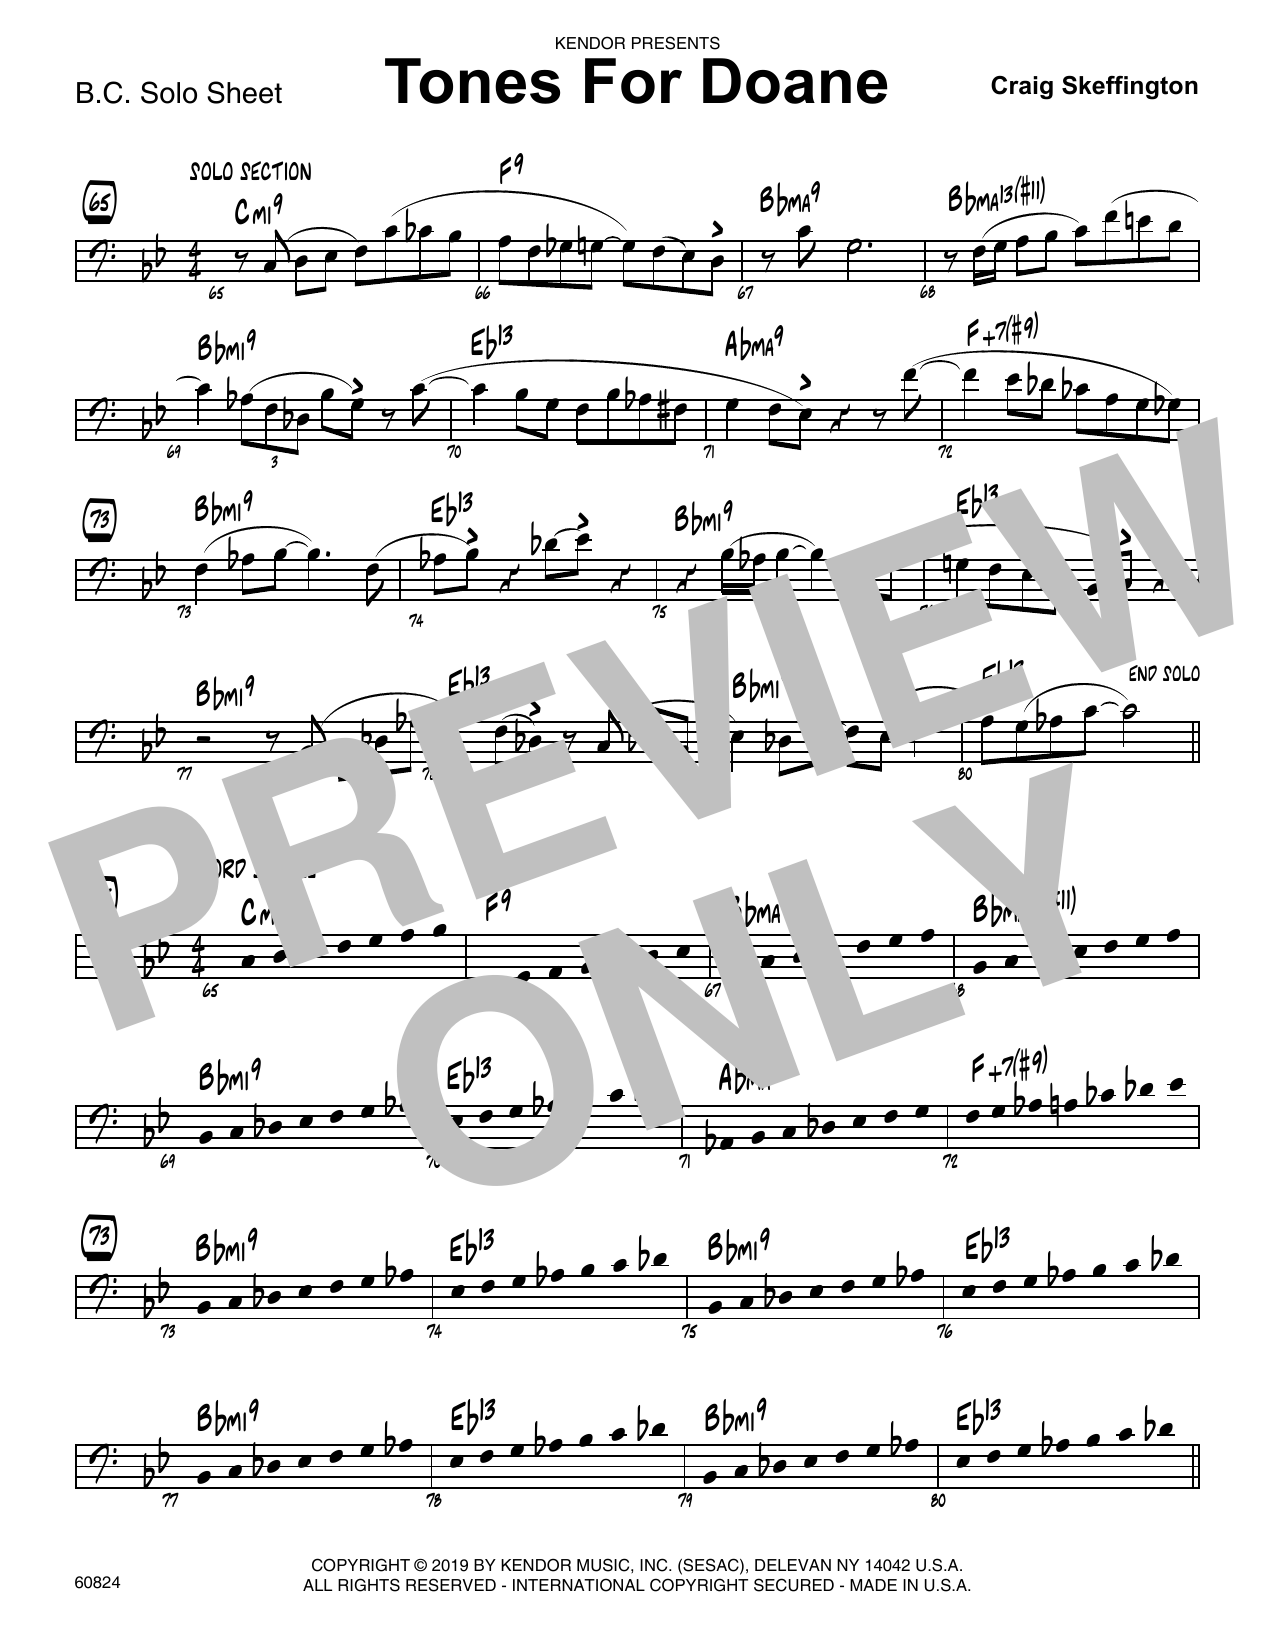 Craig Skeffington Tones For Doane - Sample Solo - Bass Clef Instr. sheet music notes and chords. Download Printable PDF.